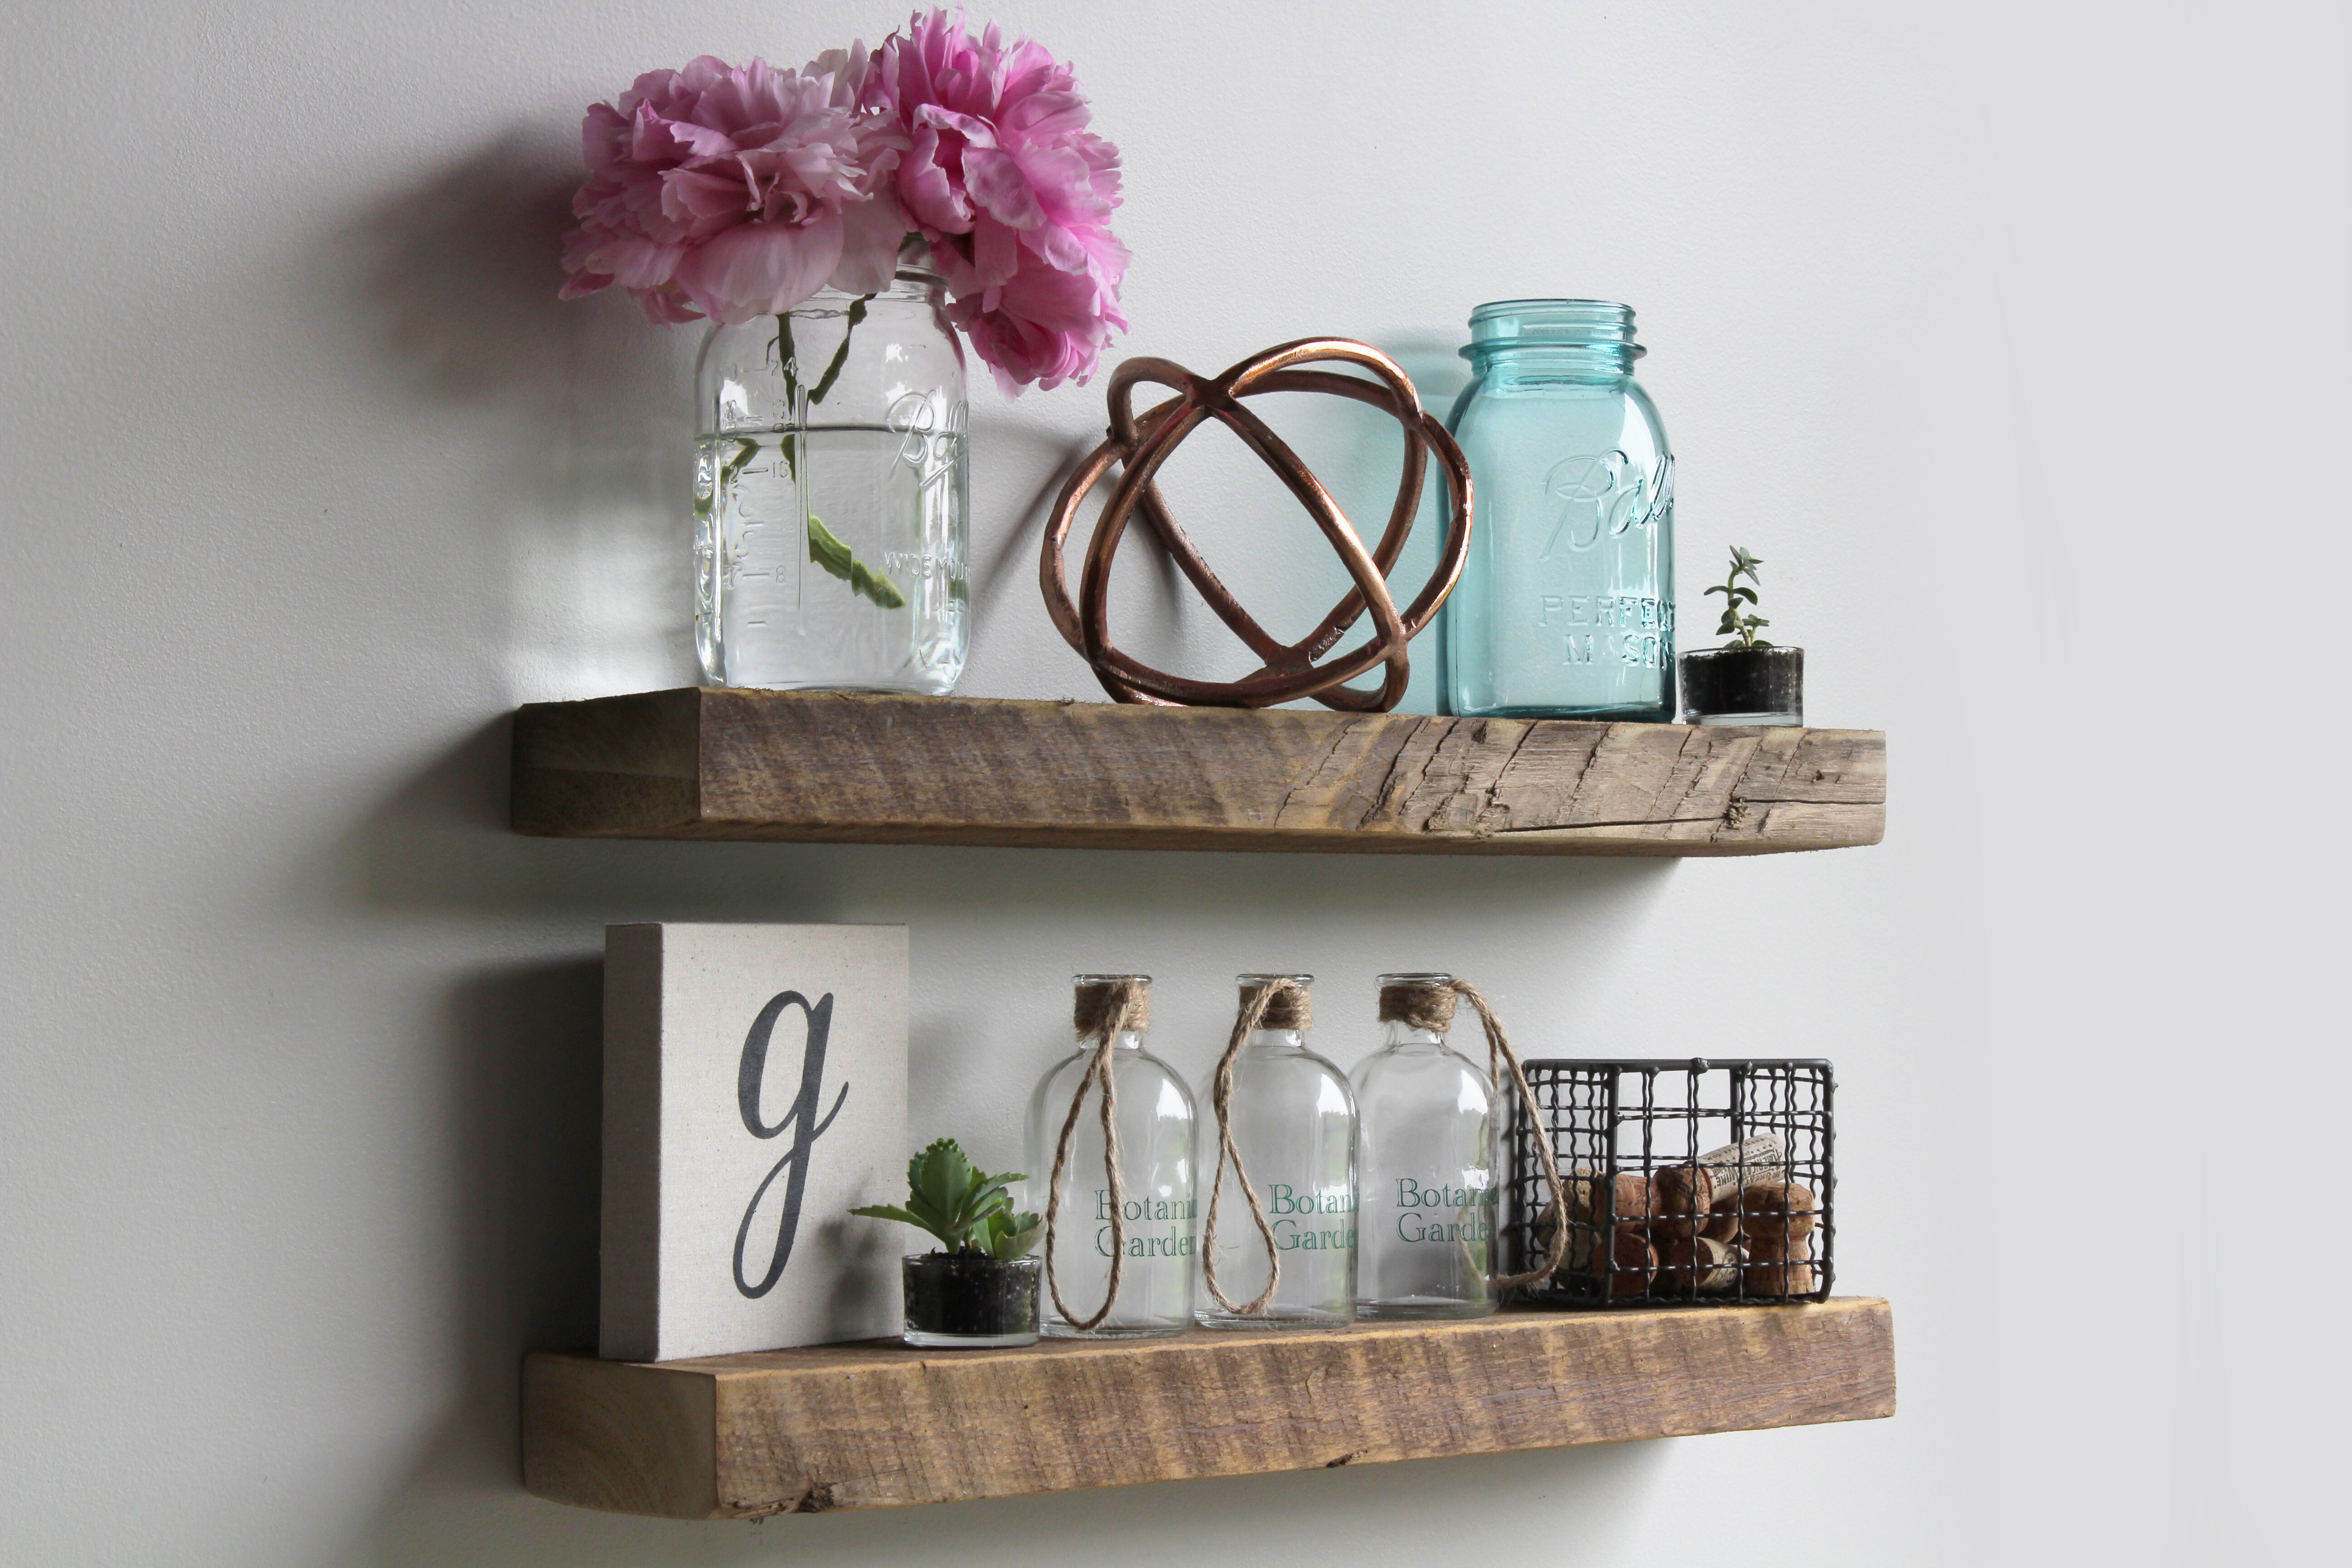 Super Reclaimed Wall Shelves Home Ideas Download Free Architecture Designs Rallybritishbridgeorg